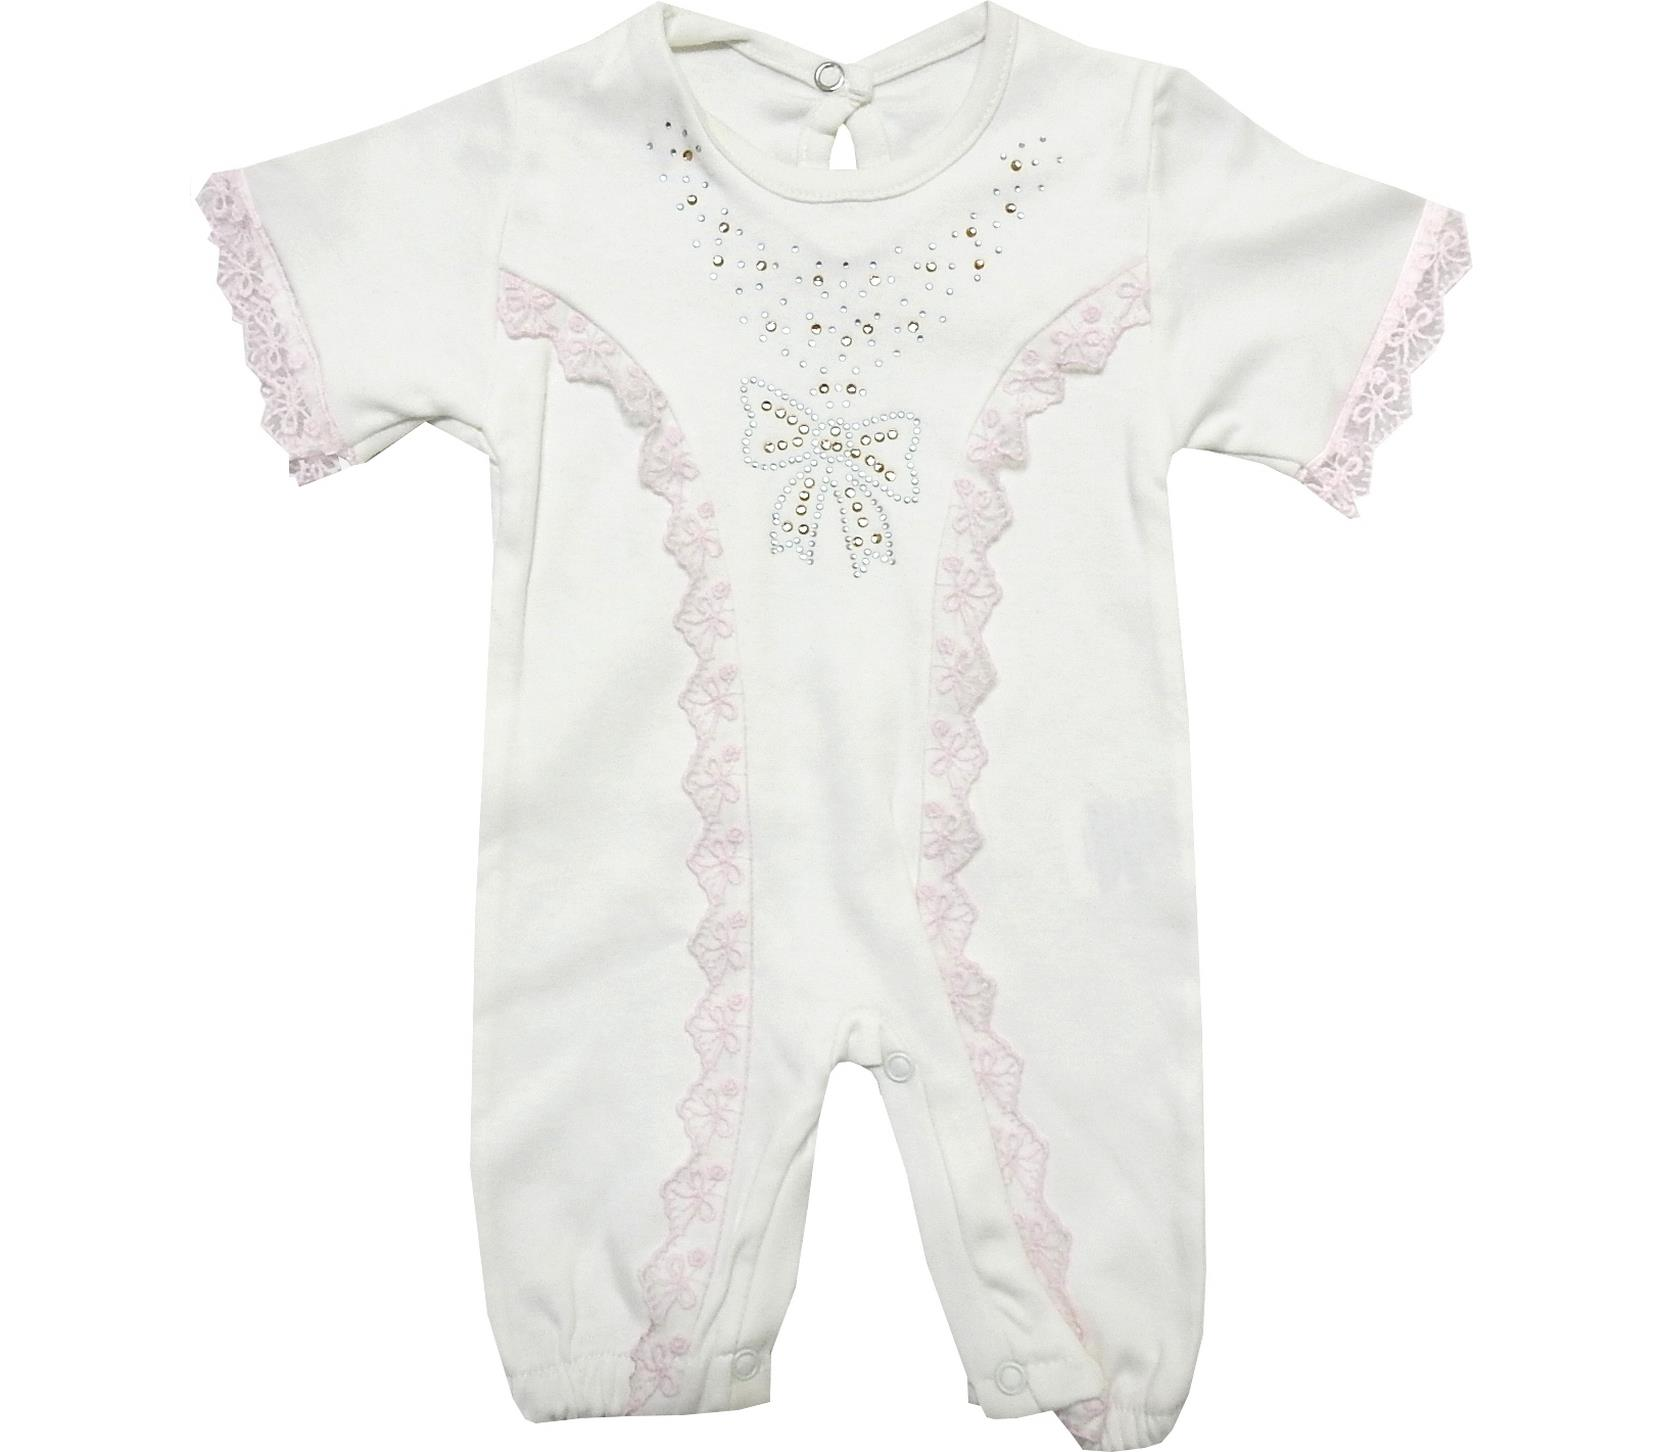 WHOLESALE LACE AND DECORATIVE CRYSTAL ROCK EMBROIDERY BODYSUIT FOR GIRL (0-3-6 MONTH)